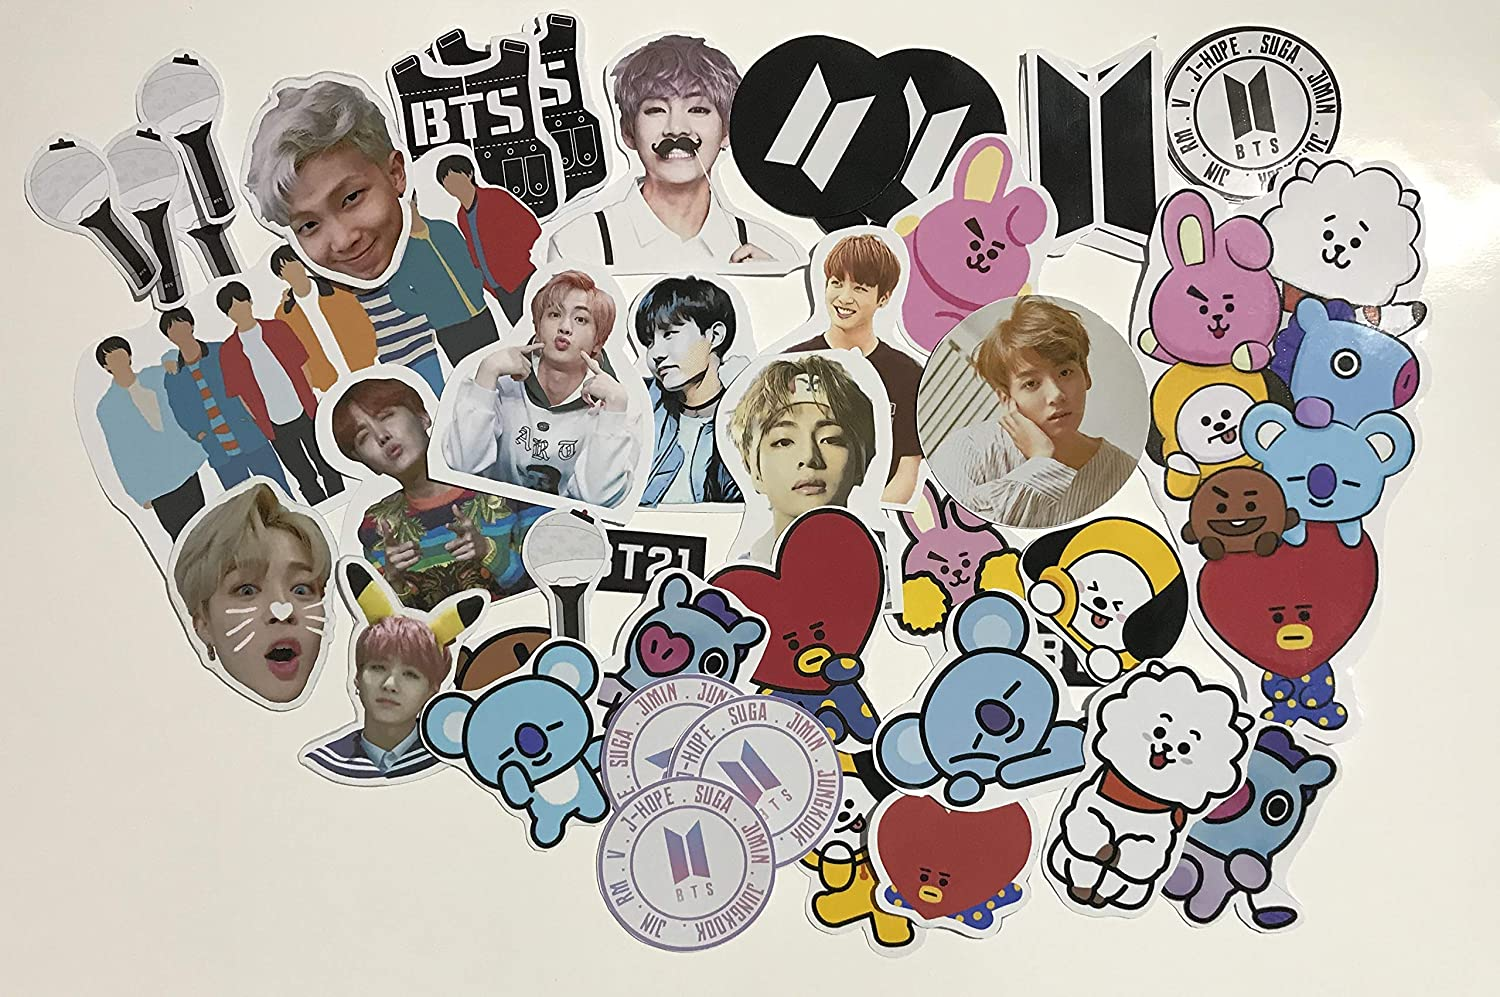 Buy Bts Stickers Version 1 Bt21 Bts Logo Stickers Bts Light Stick Army Bomb Stickers 46 Stickers Online At Low Prices In India Amazon In